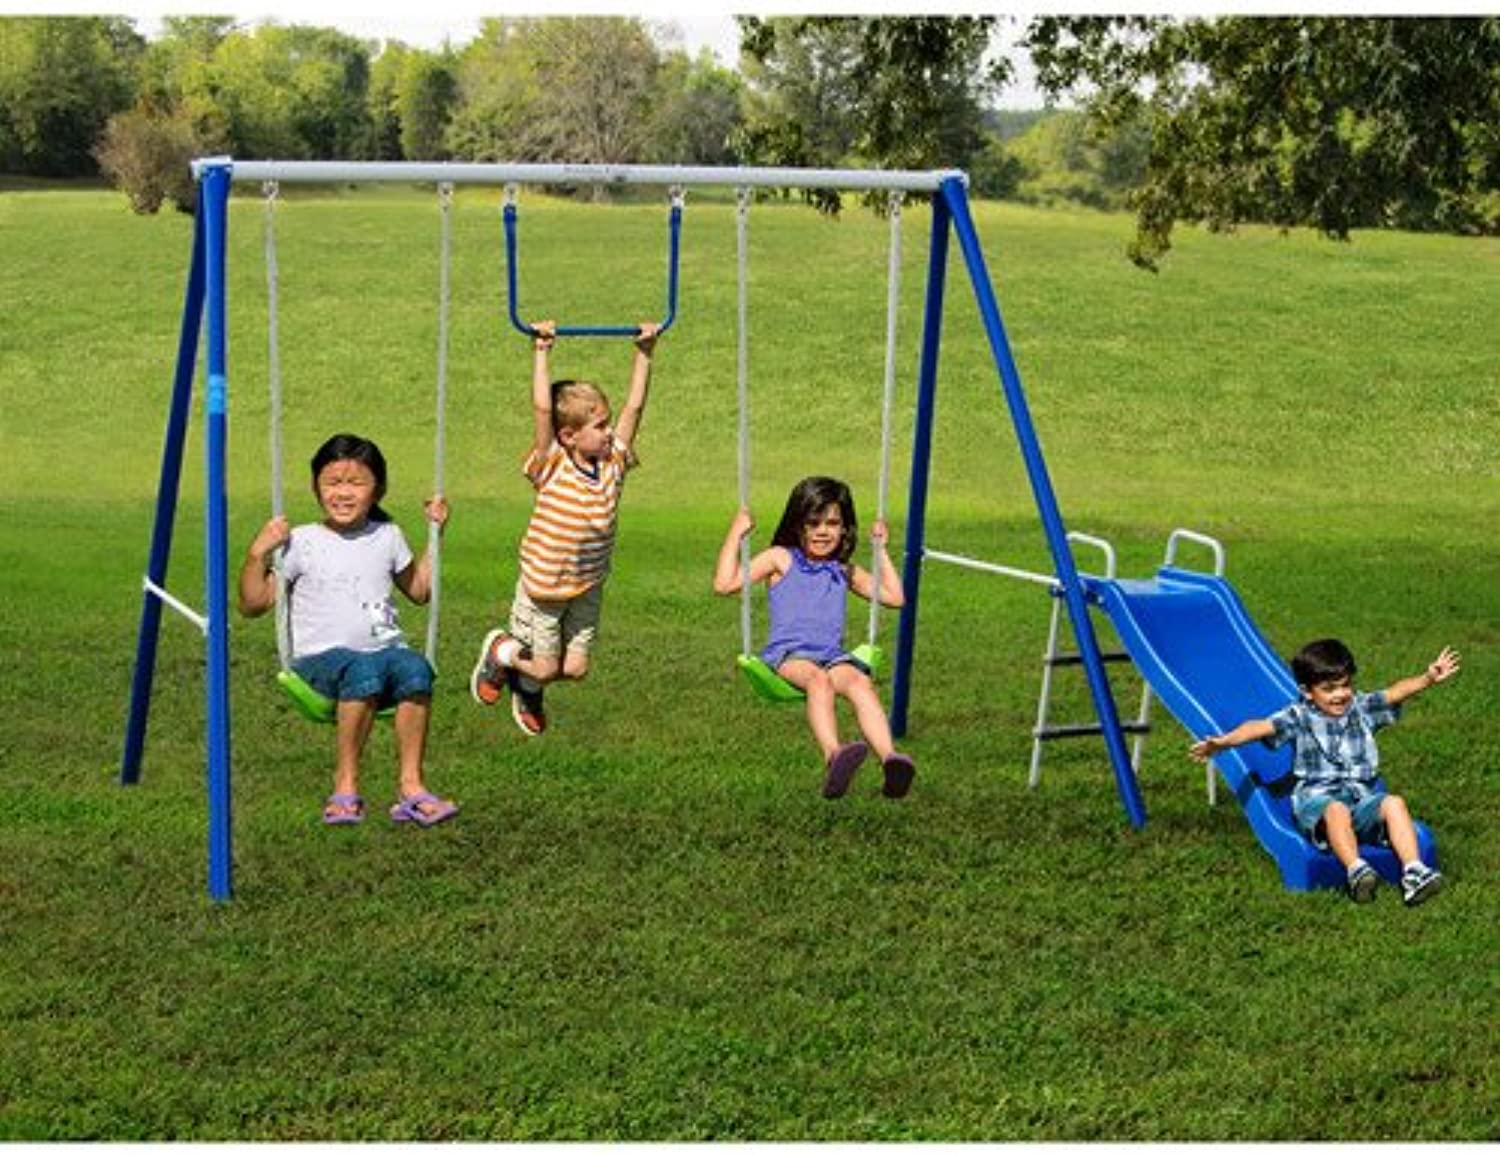 Metal Swing Sets with Slide For Kids 2-12 y.o. Outdoor Fun Play, Backyard Playground Equipment Kit on Sale Clearance by Flexible Flyer by Flexible Flyer